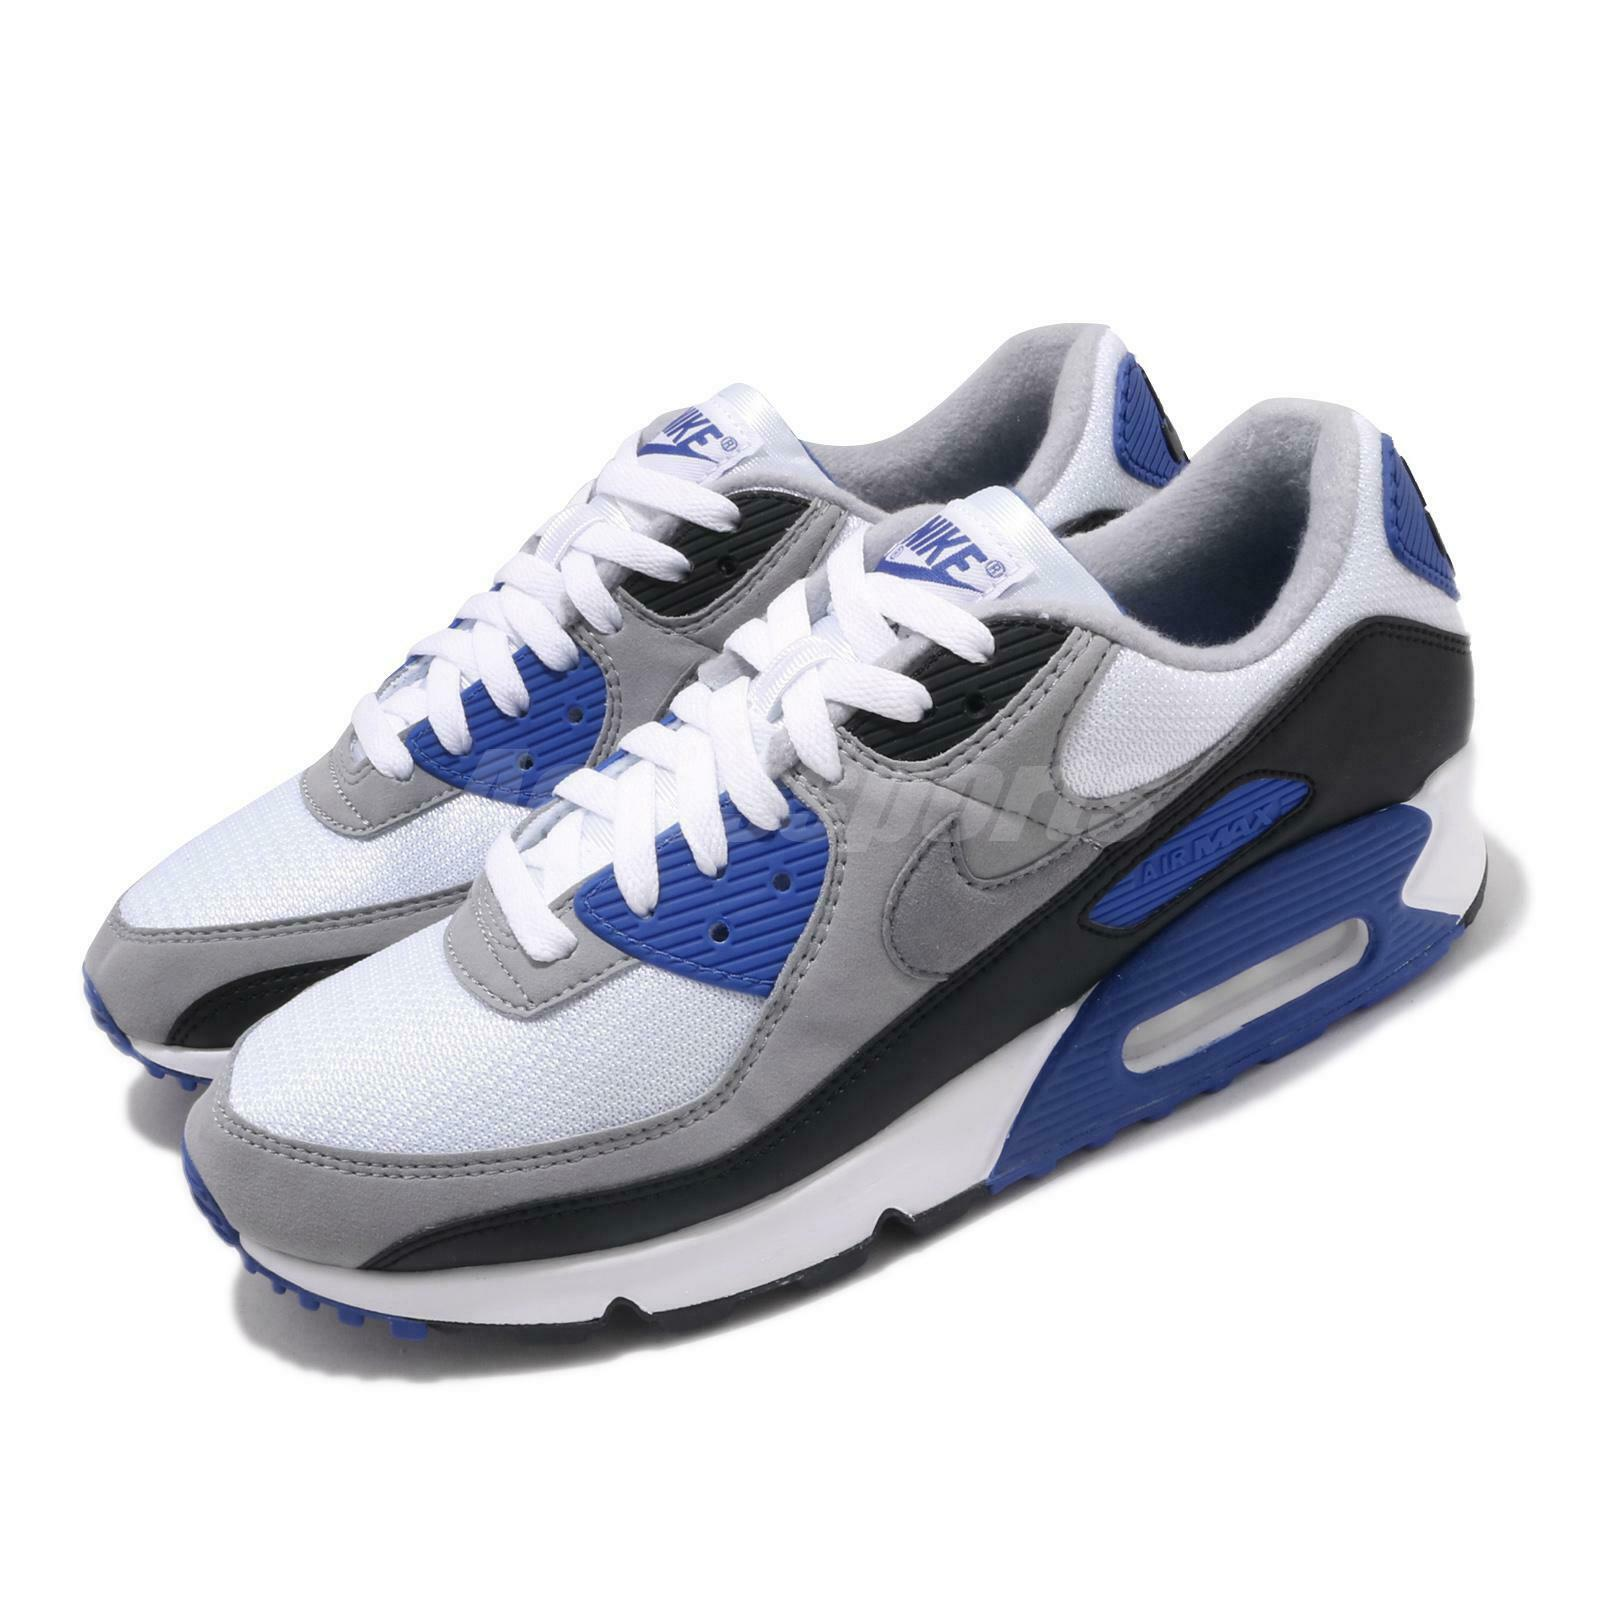 Nike Air Max 90 White Anthracite Obsidian Soar Blue 325018 050 Us